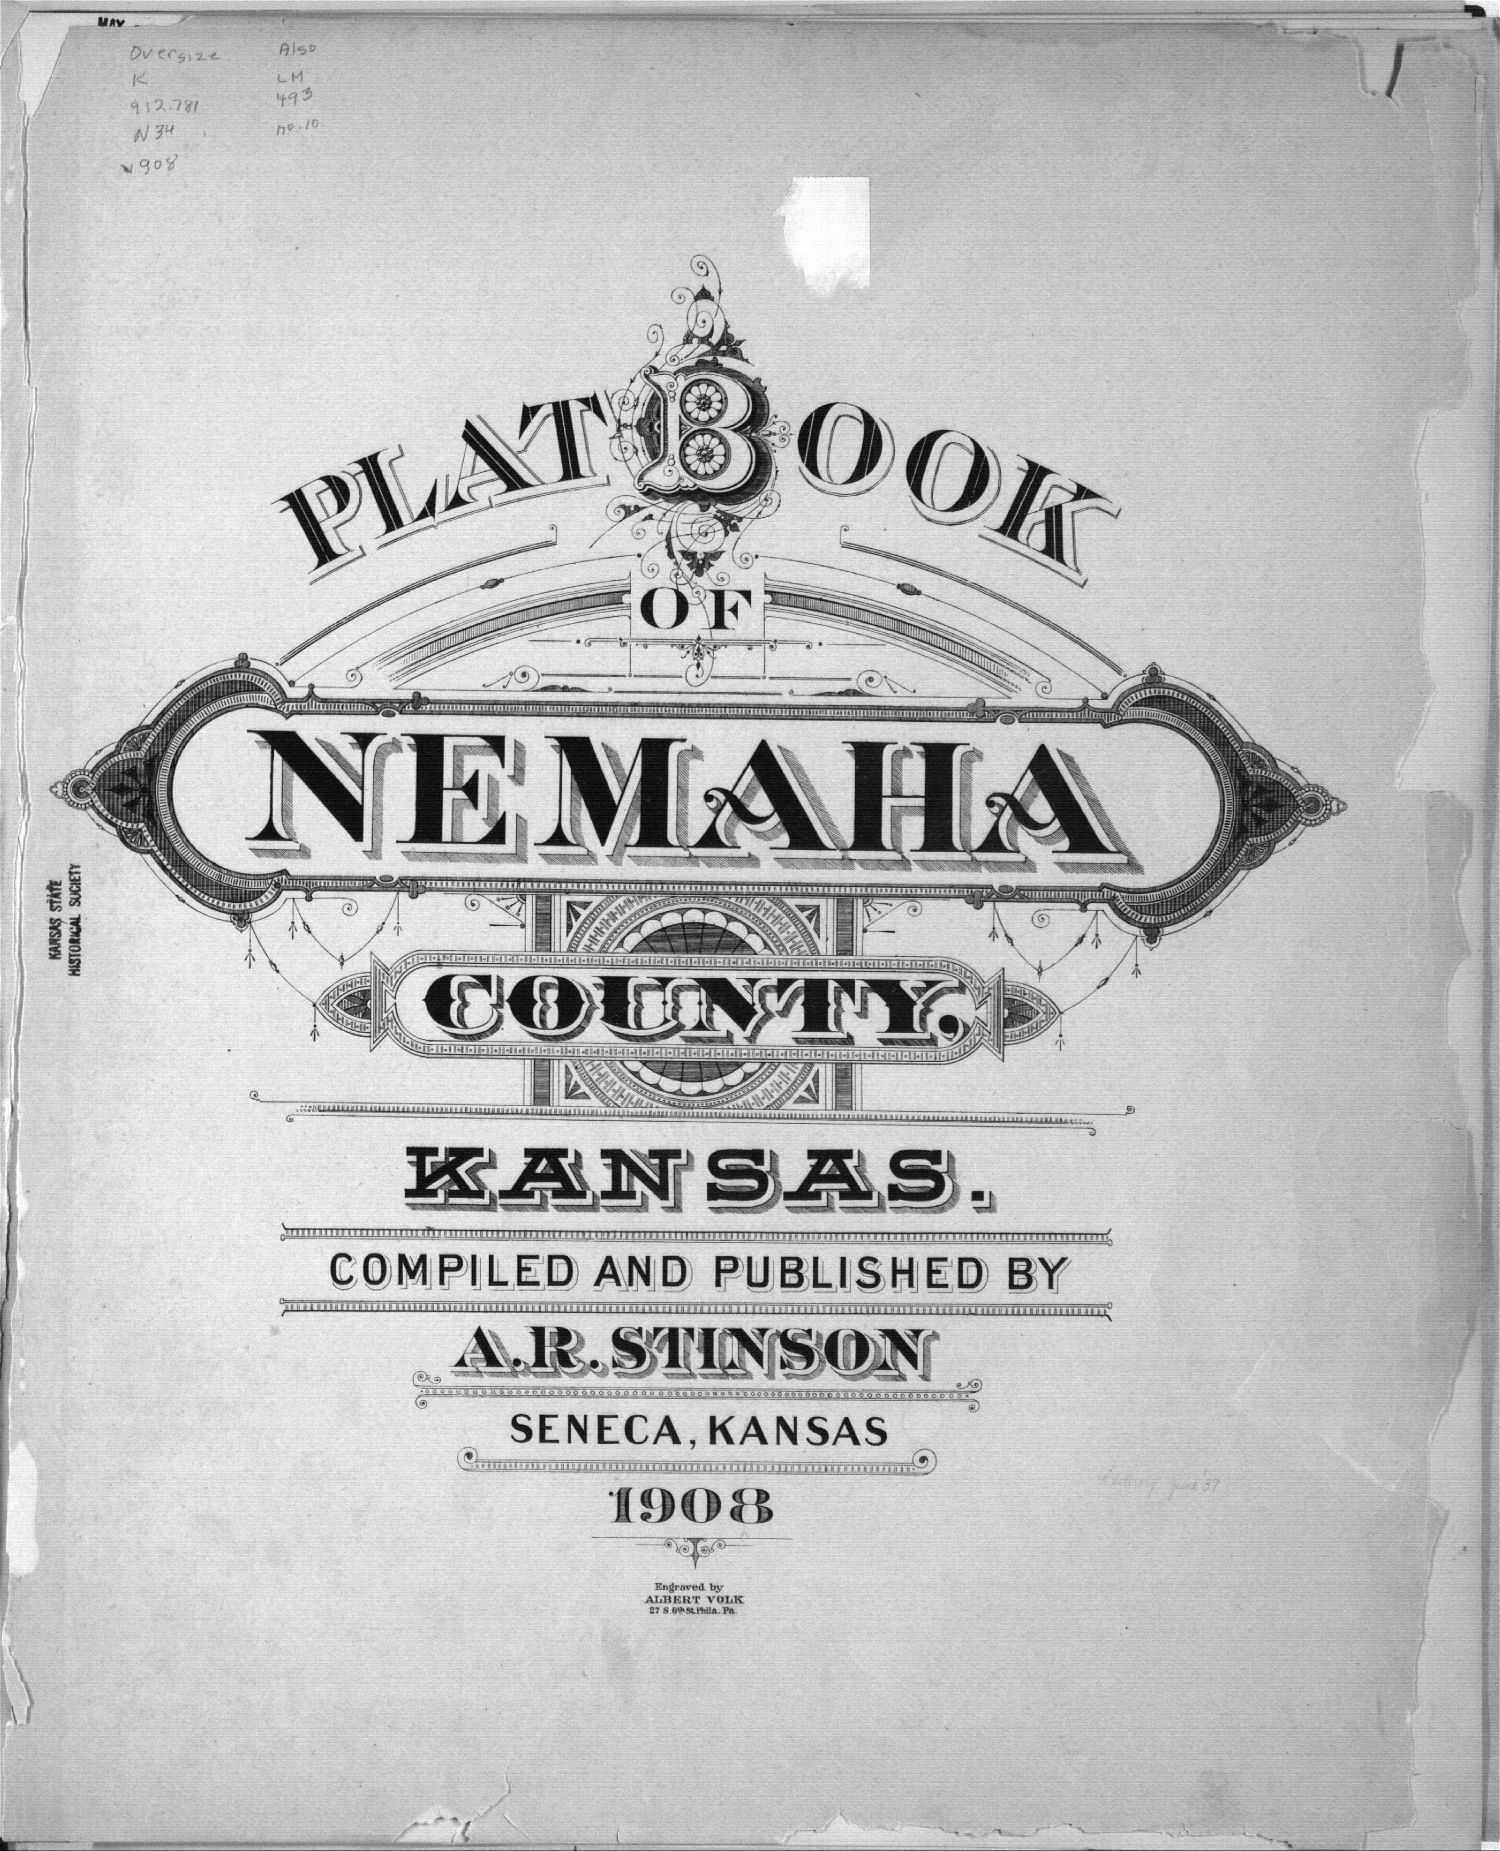 Plat book of Nemaha County, Kansas - Title Page